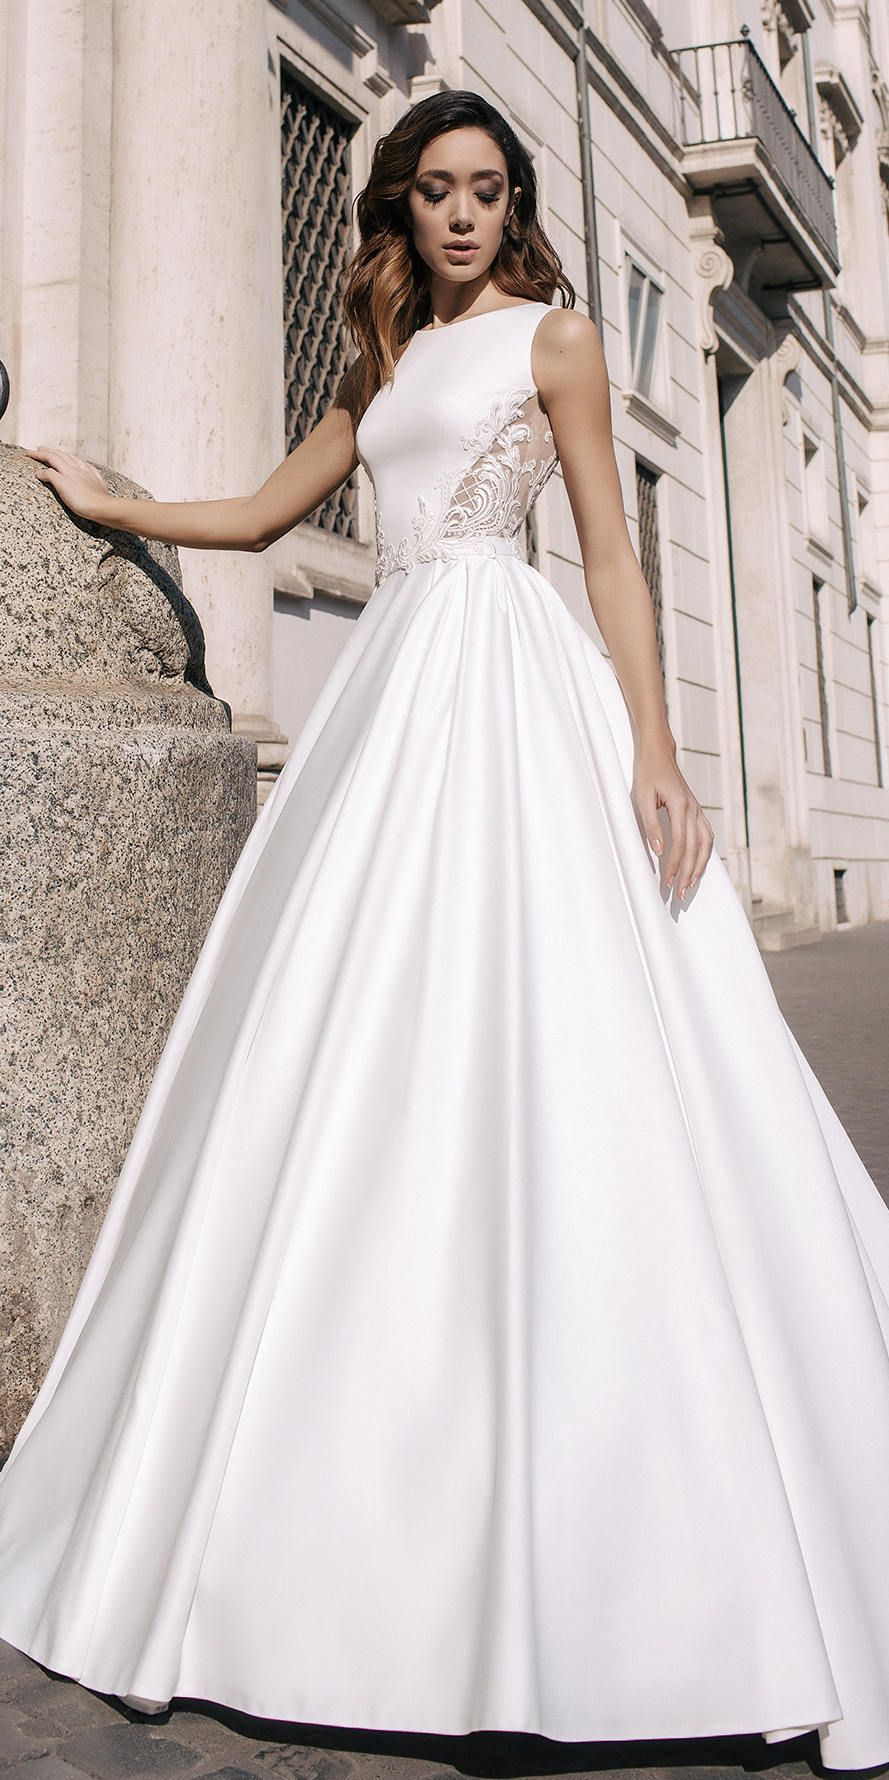 Backless a line satin wedding dress stunning ball gown with lace top